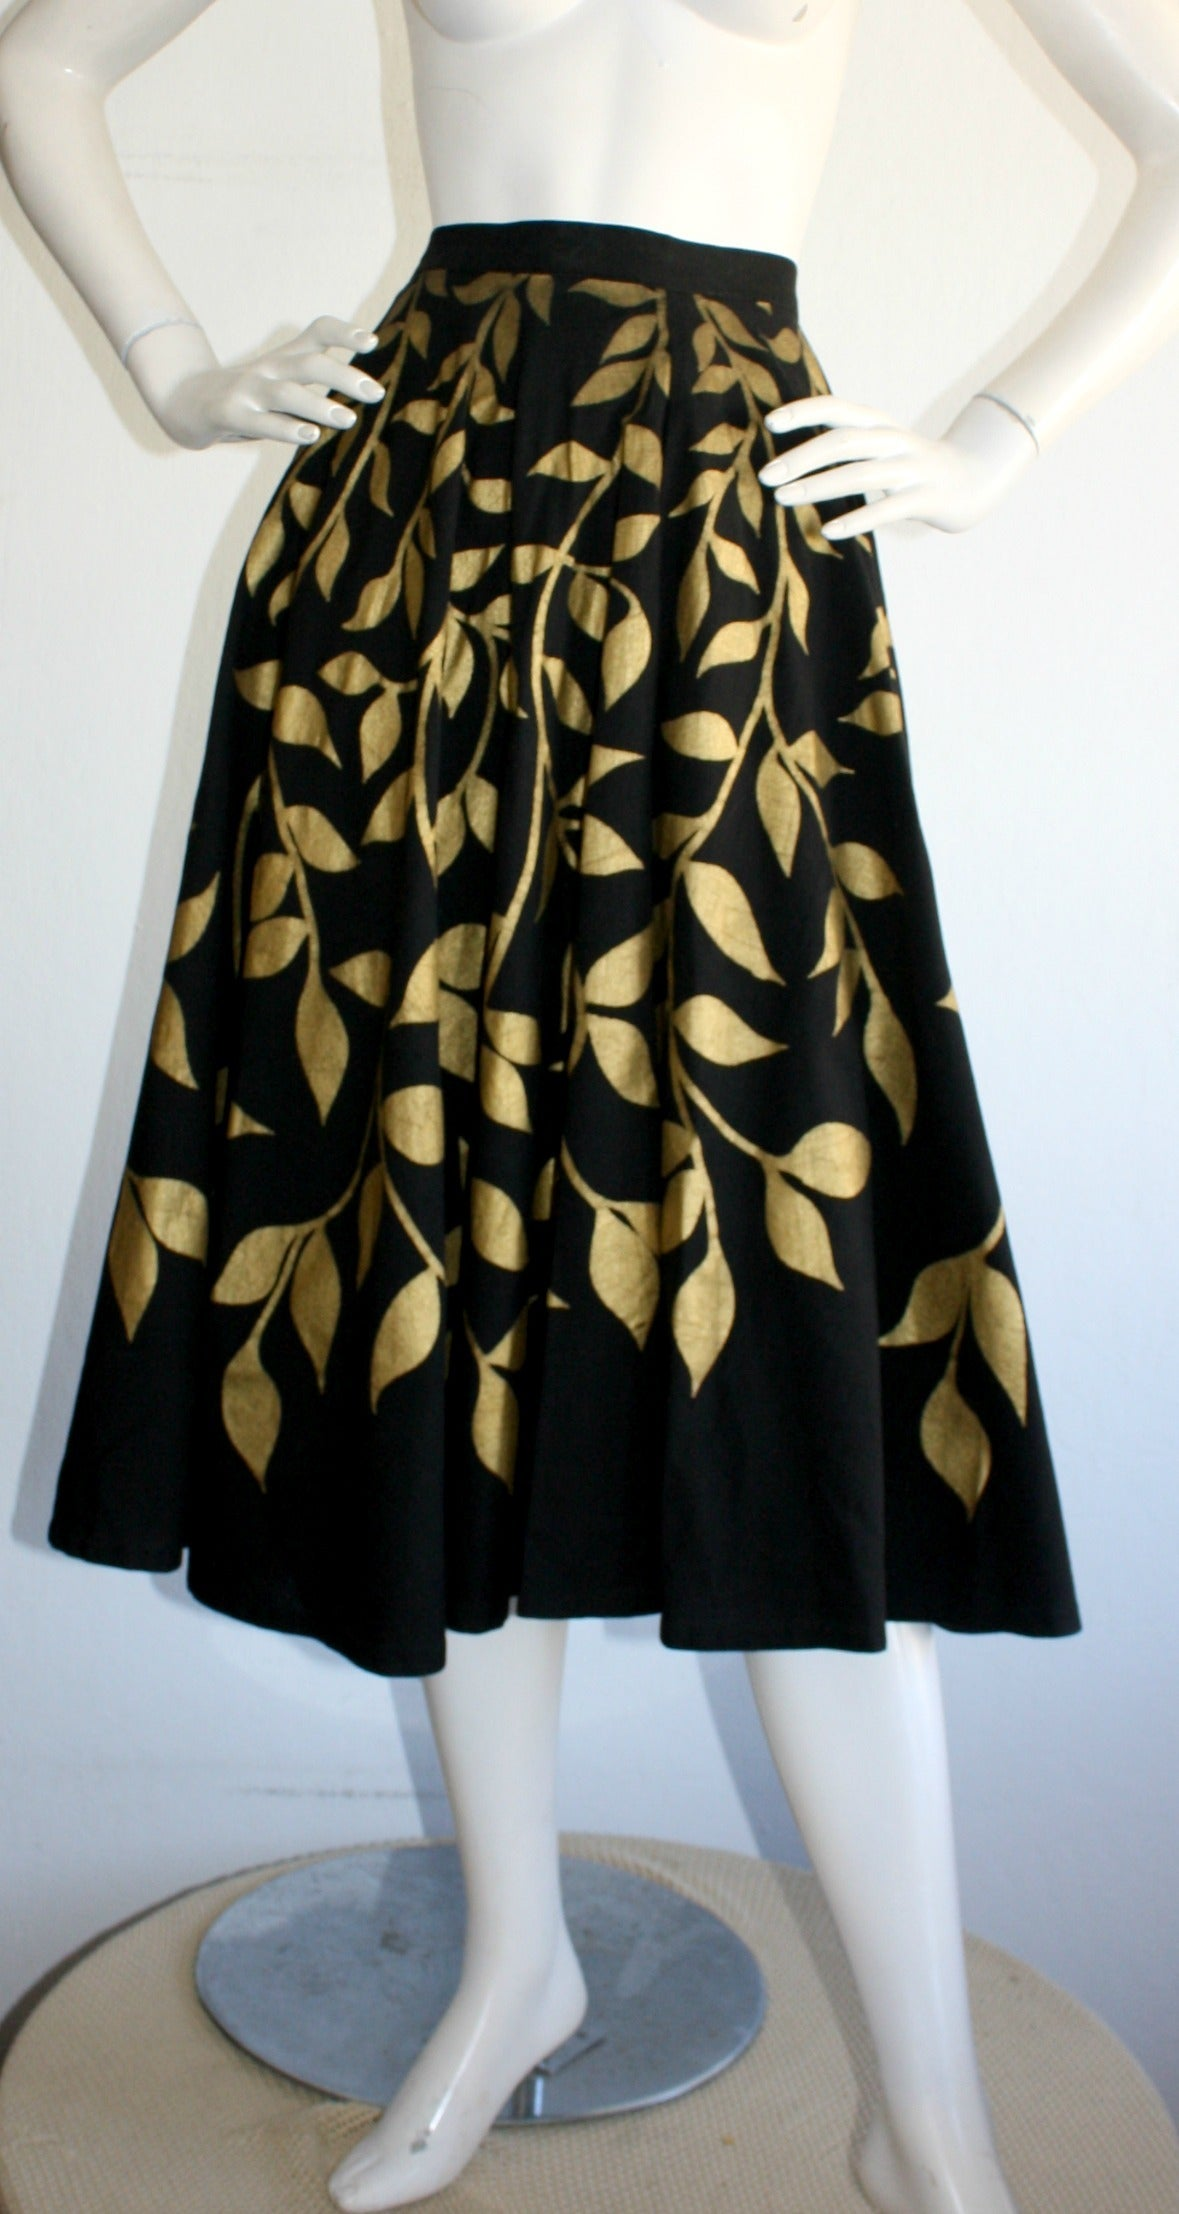 Striking 1950s vintage Londy of Mexico hand painted skirt! Sturdy black cotton, with hand painted gold metallic foliage/leaves. Wonderful full skirt, that could easily accommodate a crinoline/petticoat. Can go from day to night. In great condition.